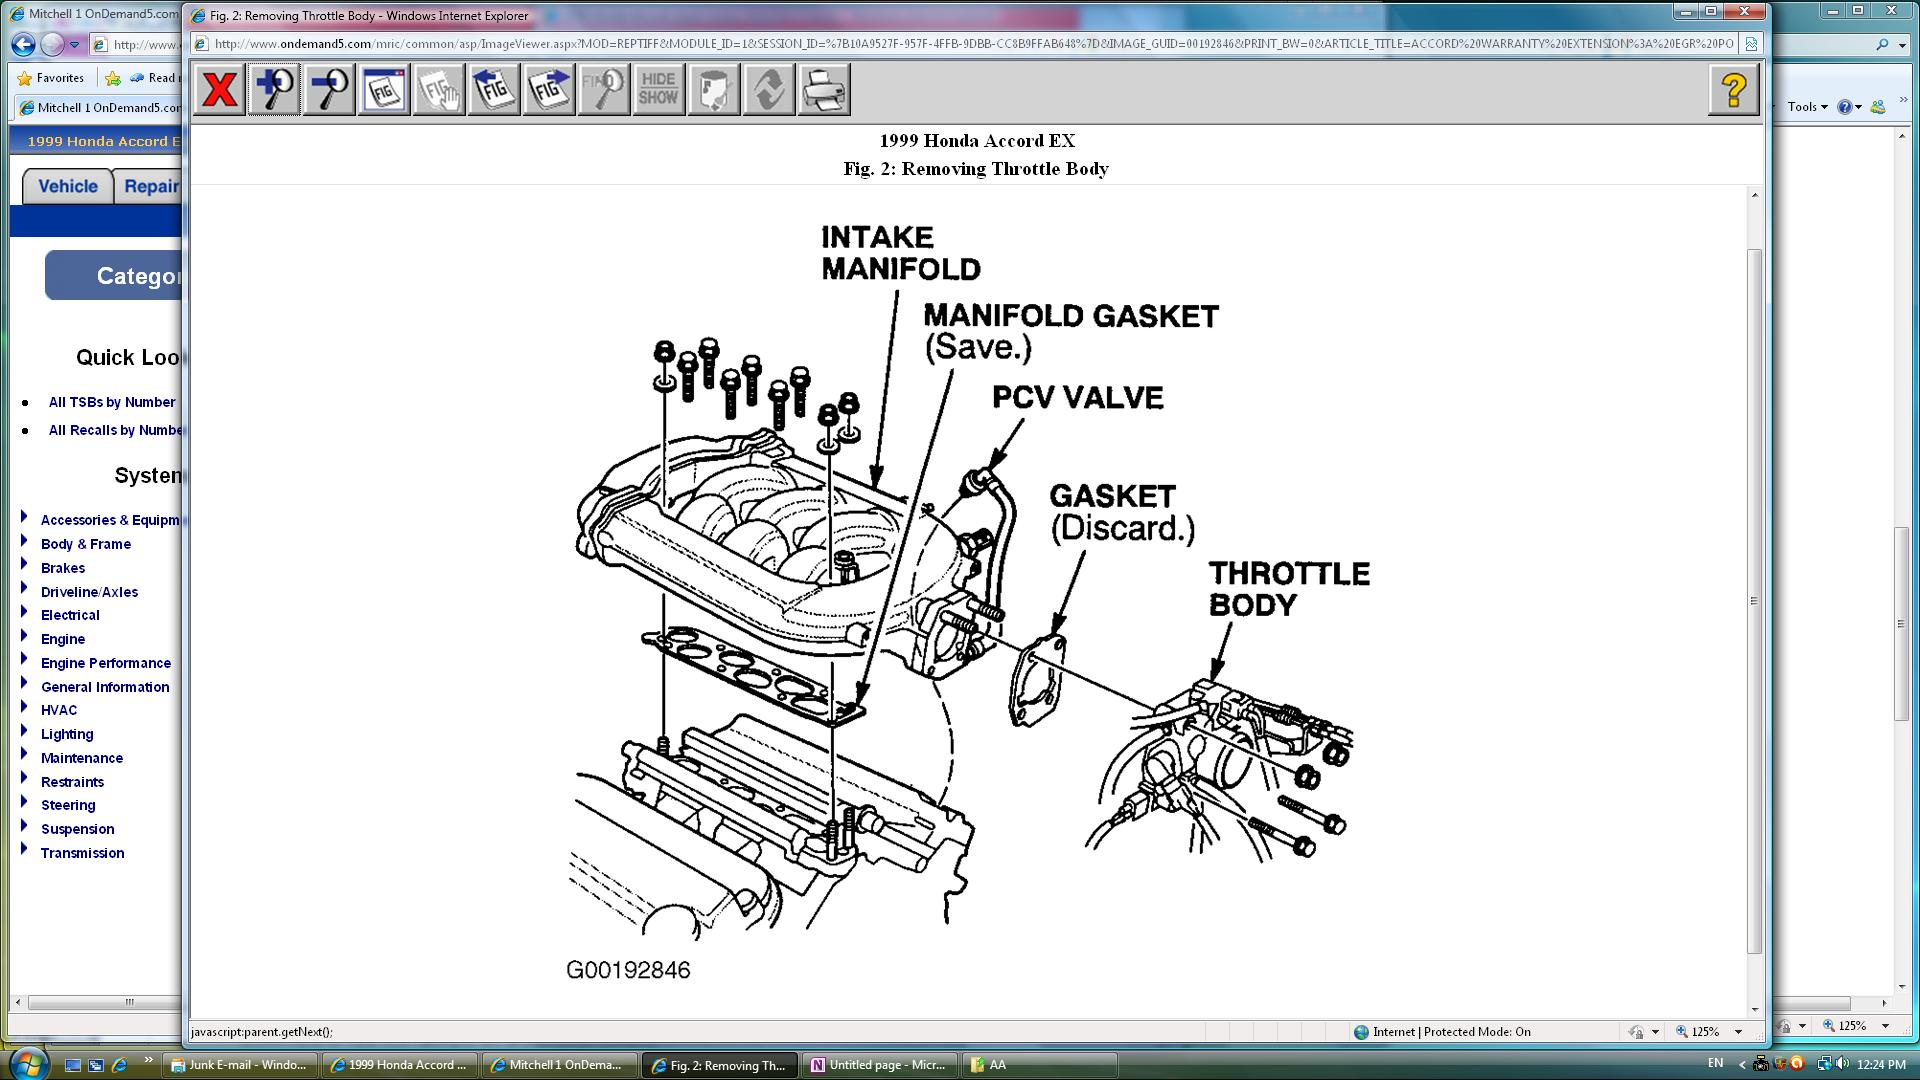 hight resolution of 1999 honda accord upper intake manifold diagram engine1999 accord engine diagram 15